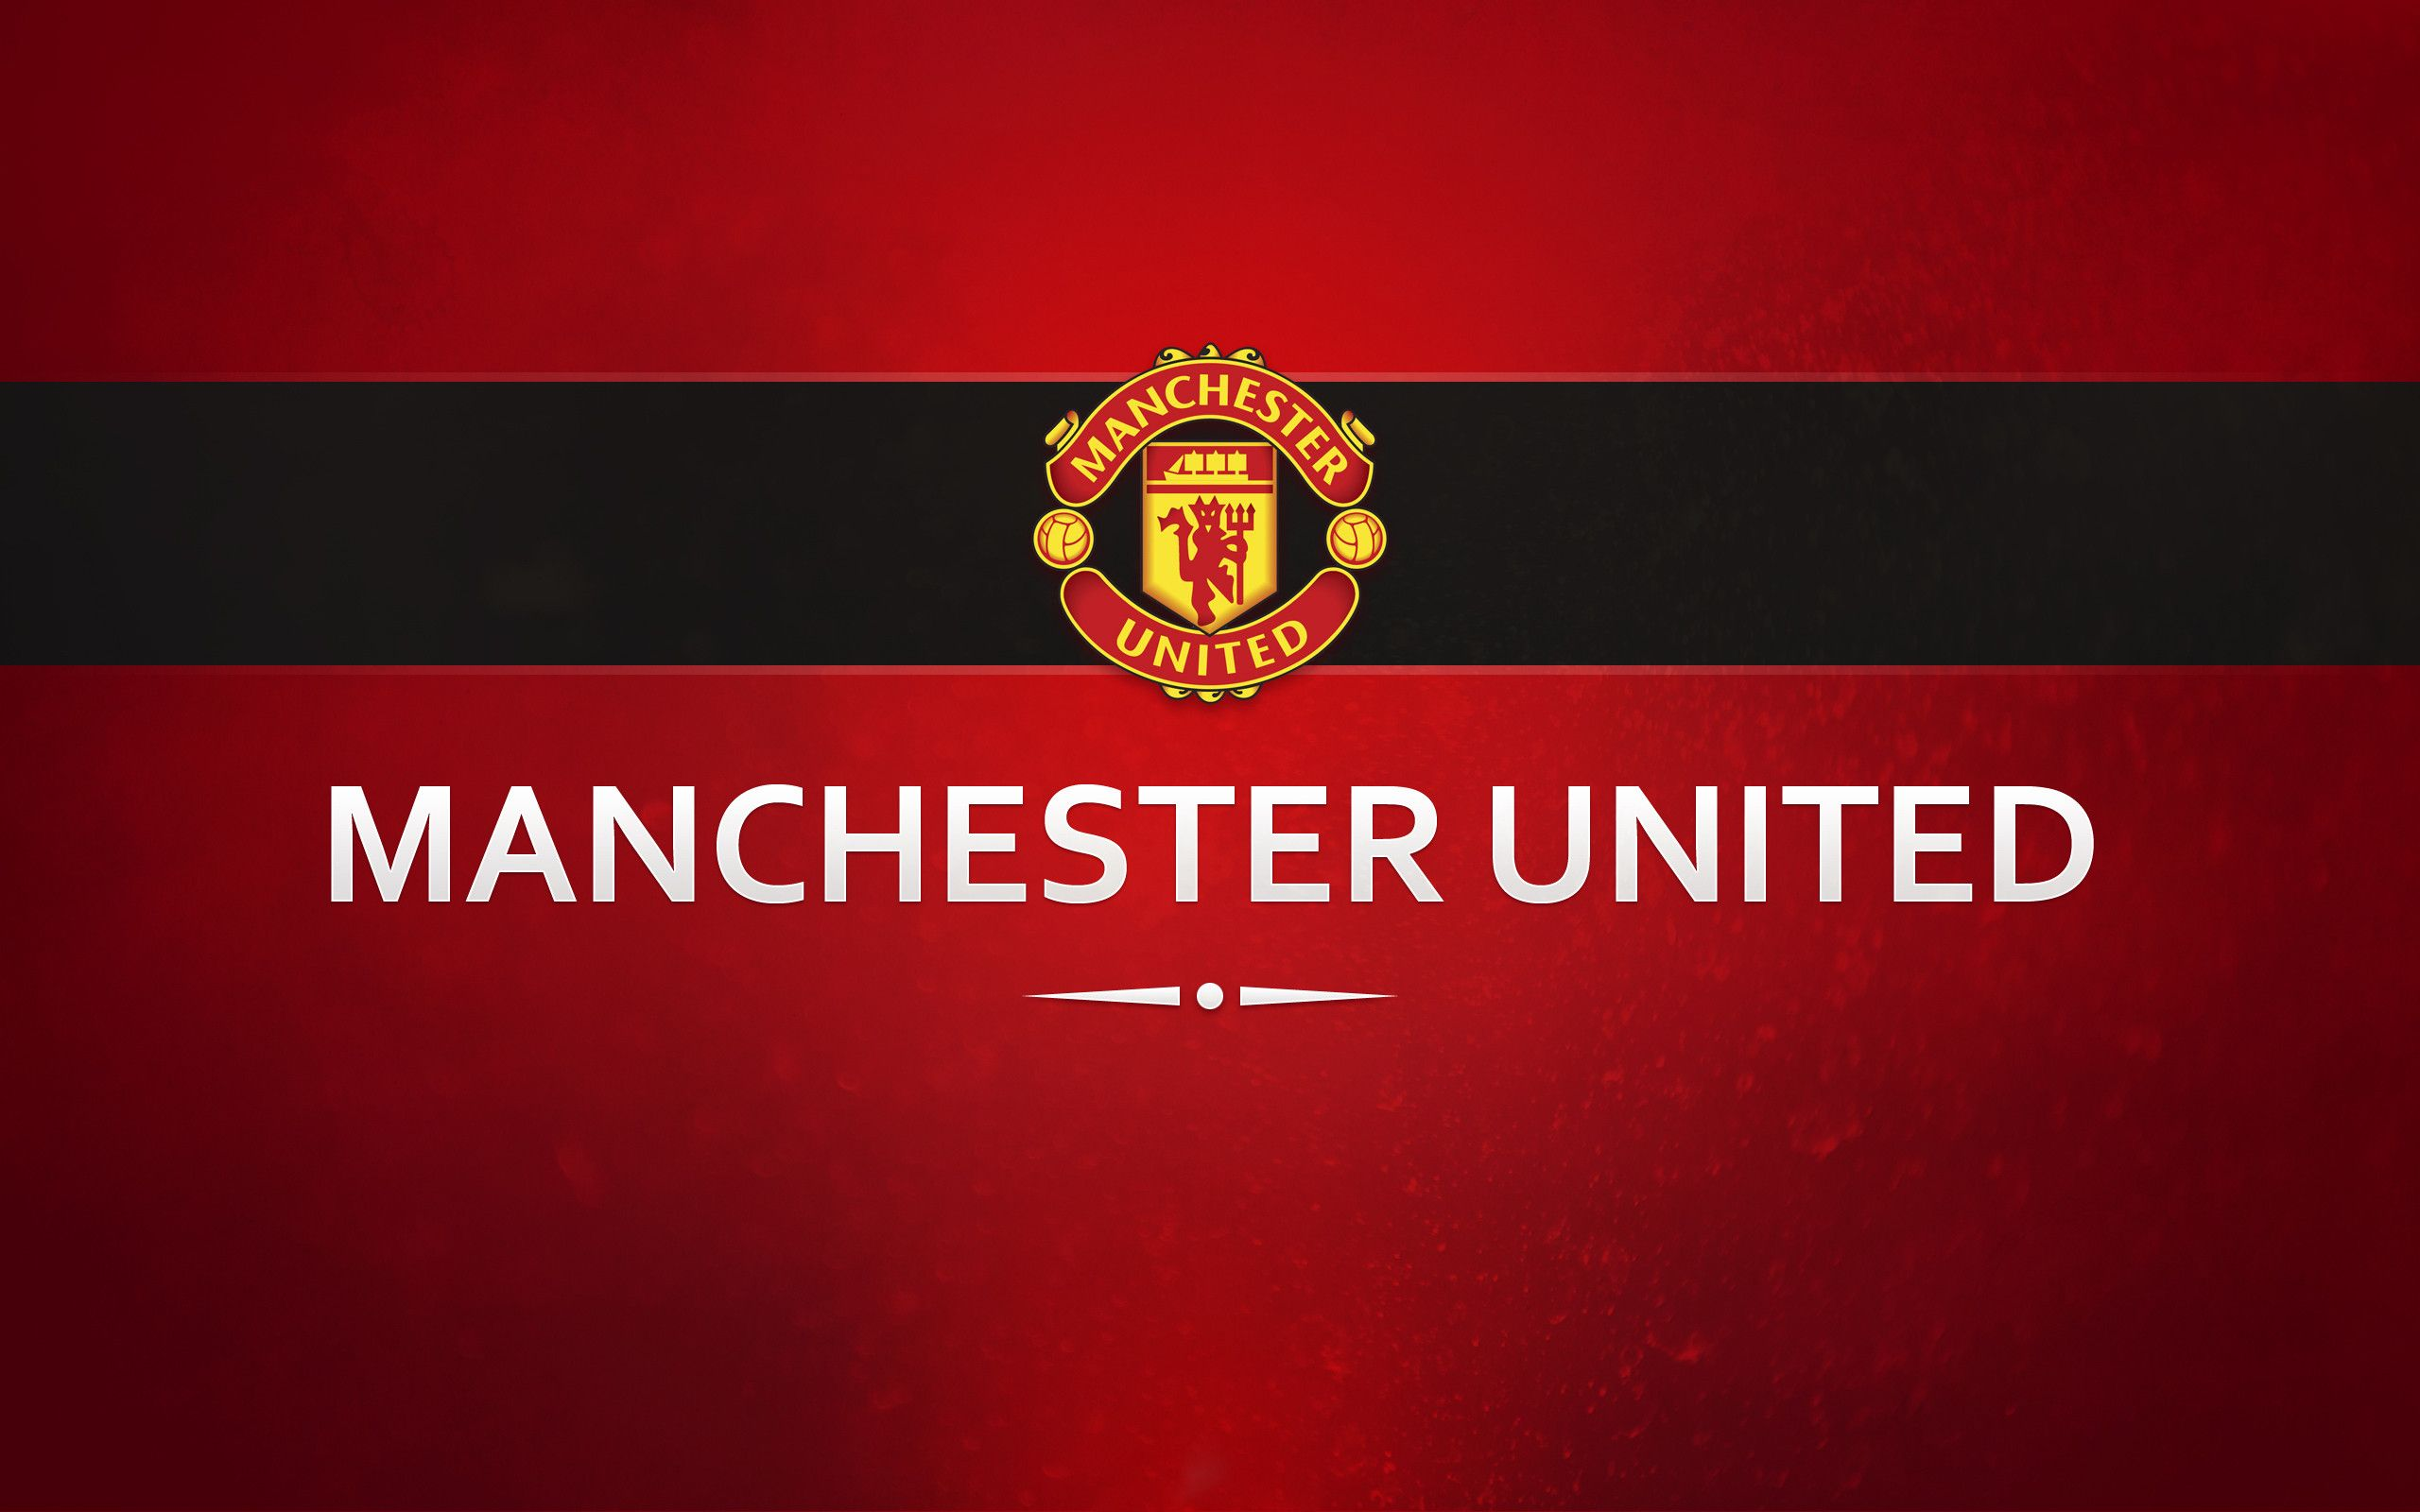 Manchester United-Wallpaper